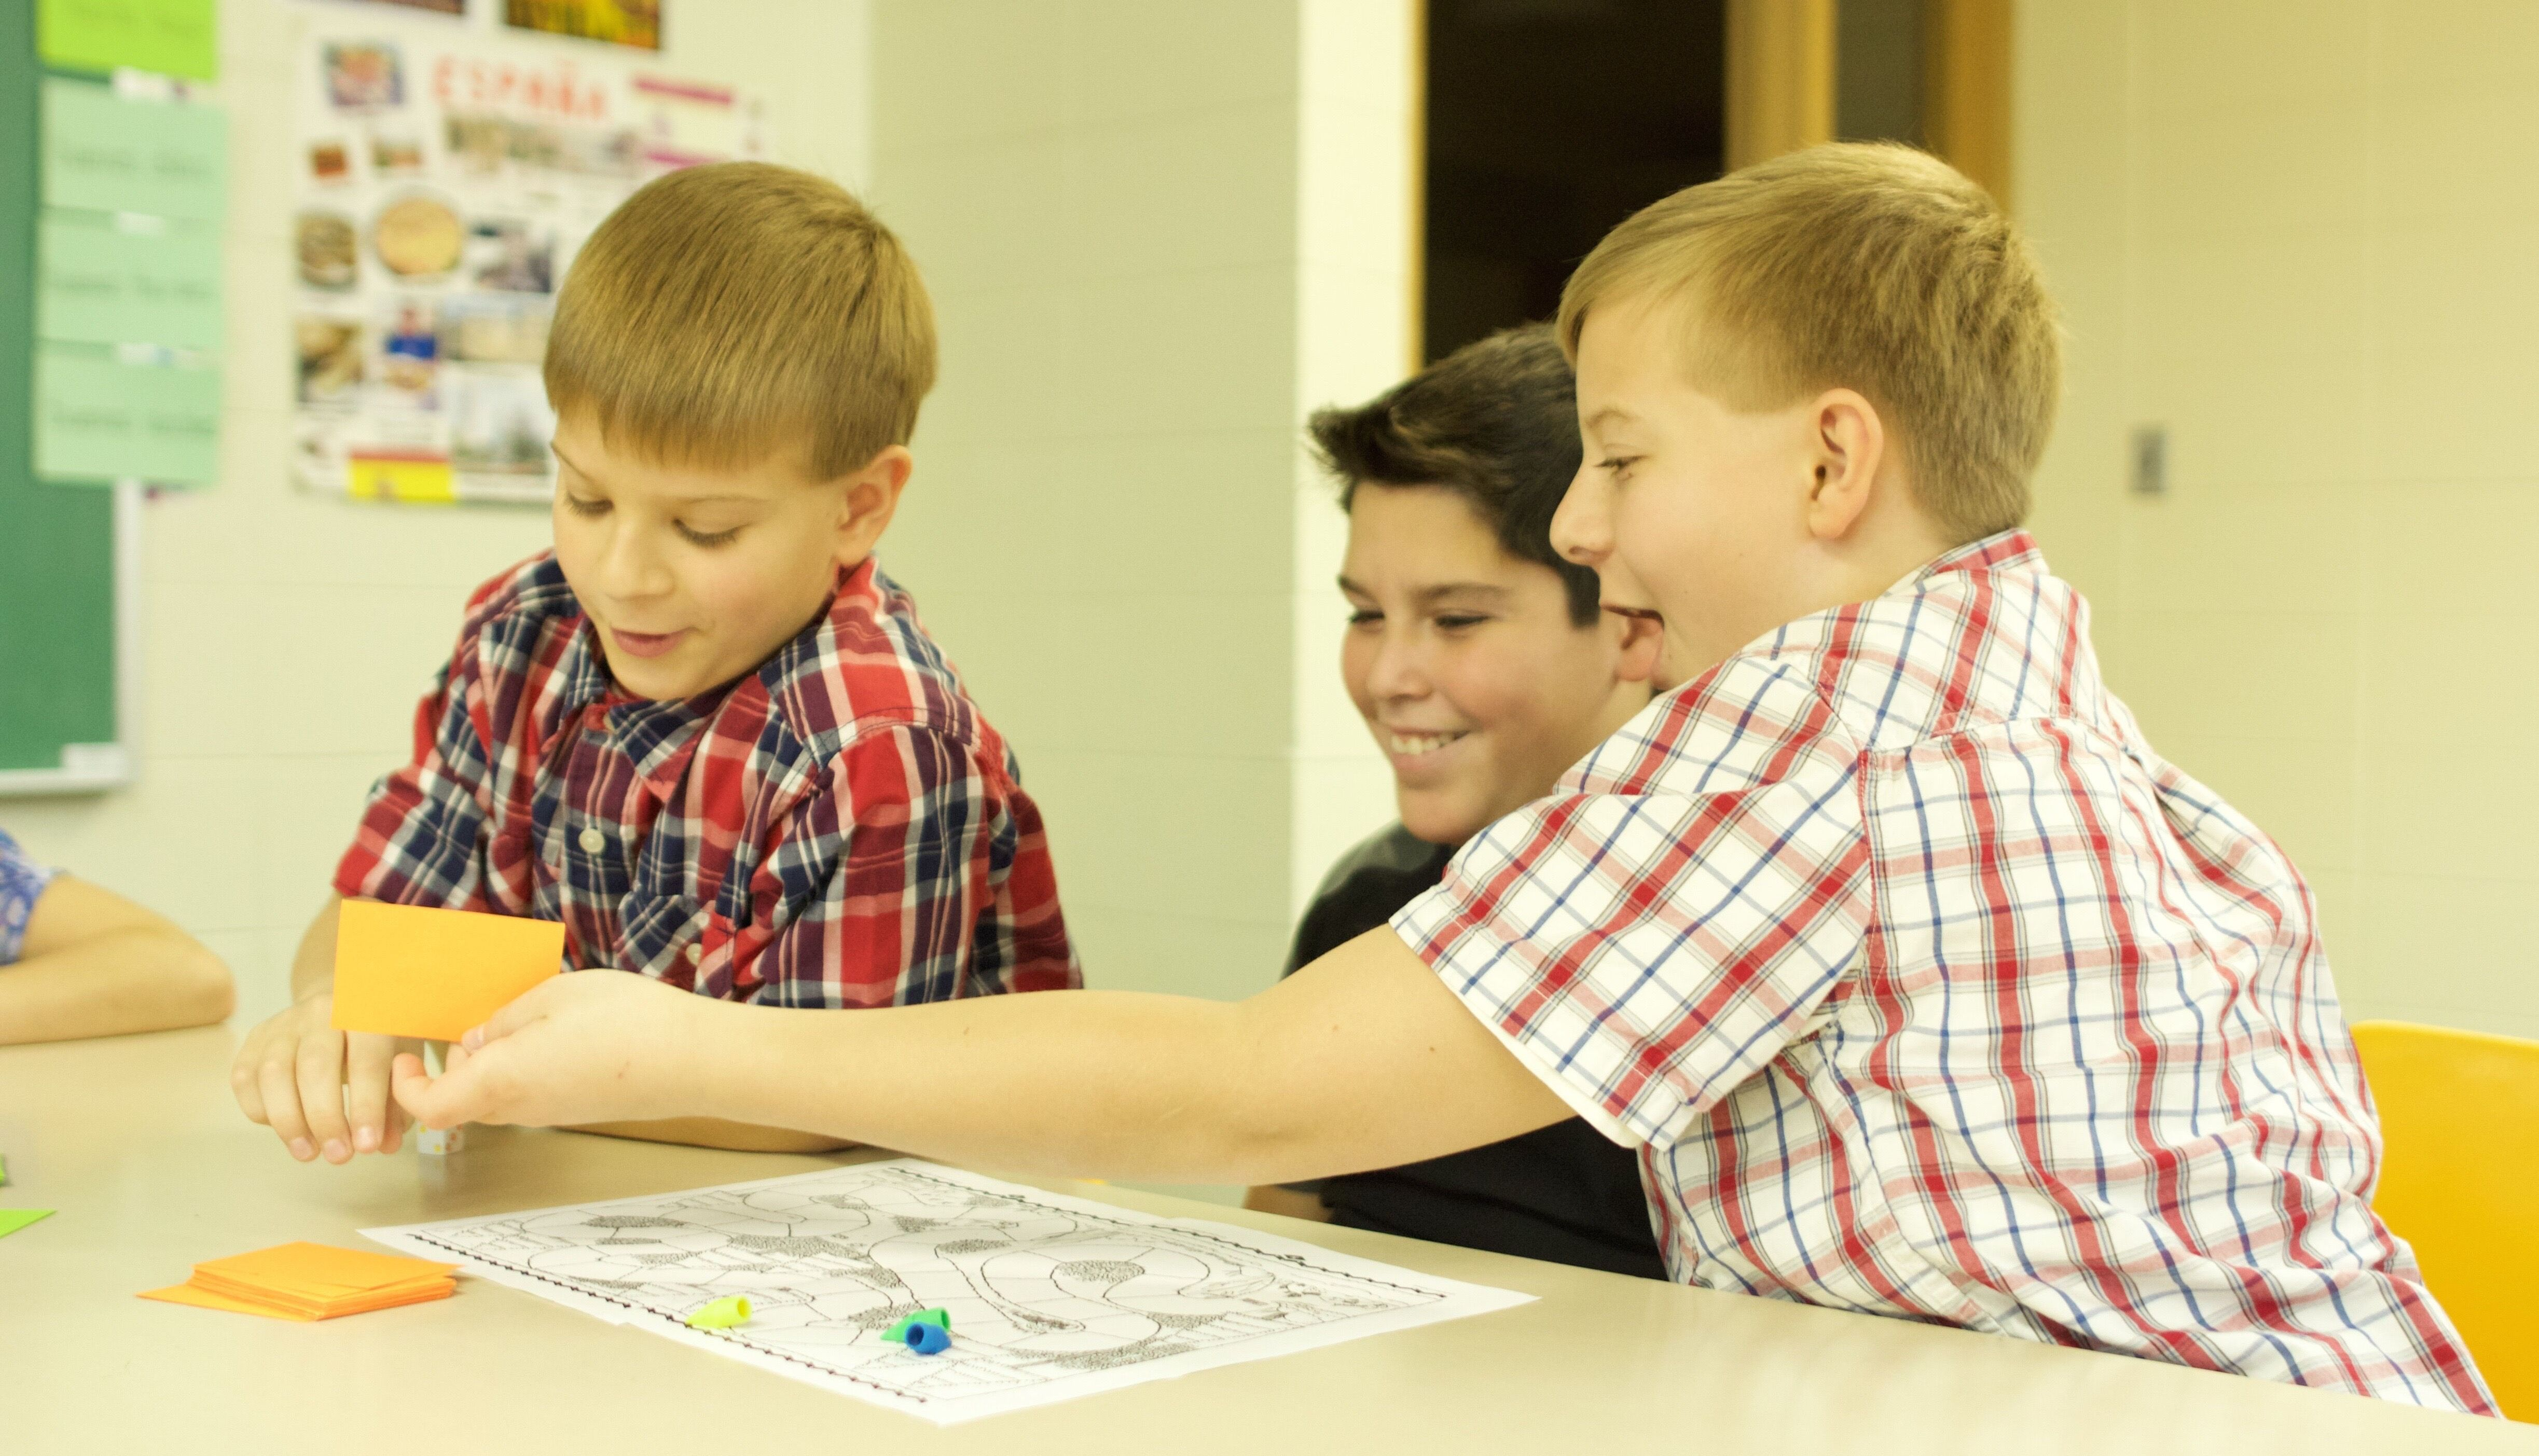 Kids Have Fun Learning Spanish When They Can Do Activities